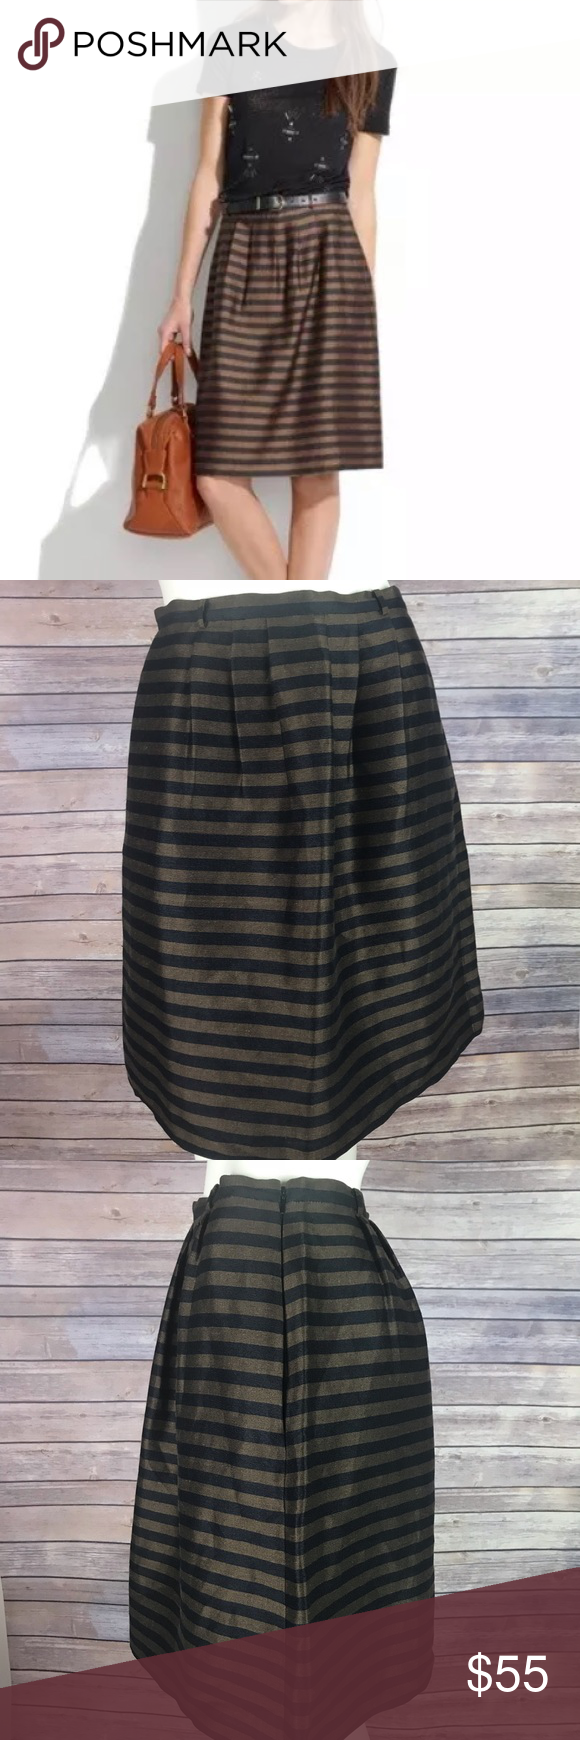 cb99c0dc83 Madewell Pleated Stripe Linen Silk Pockets Skirt Women's Madewell brown and  black striped pleated skirt with